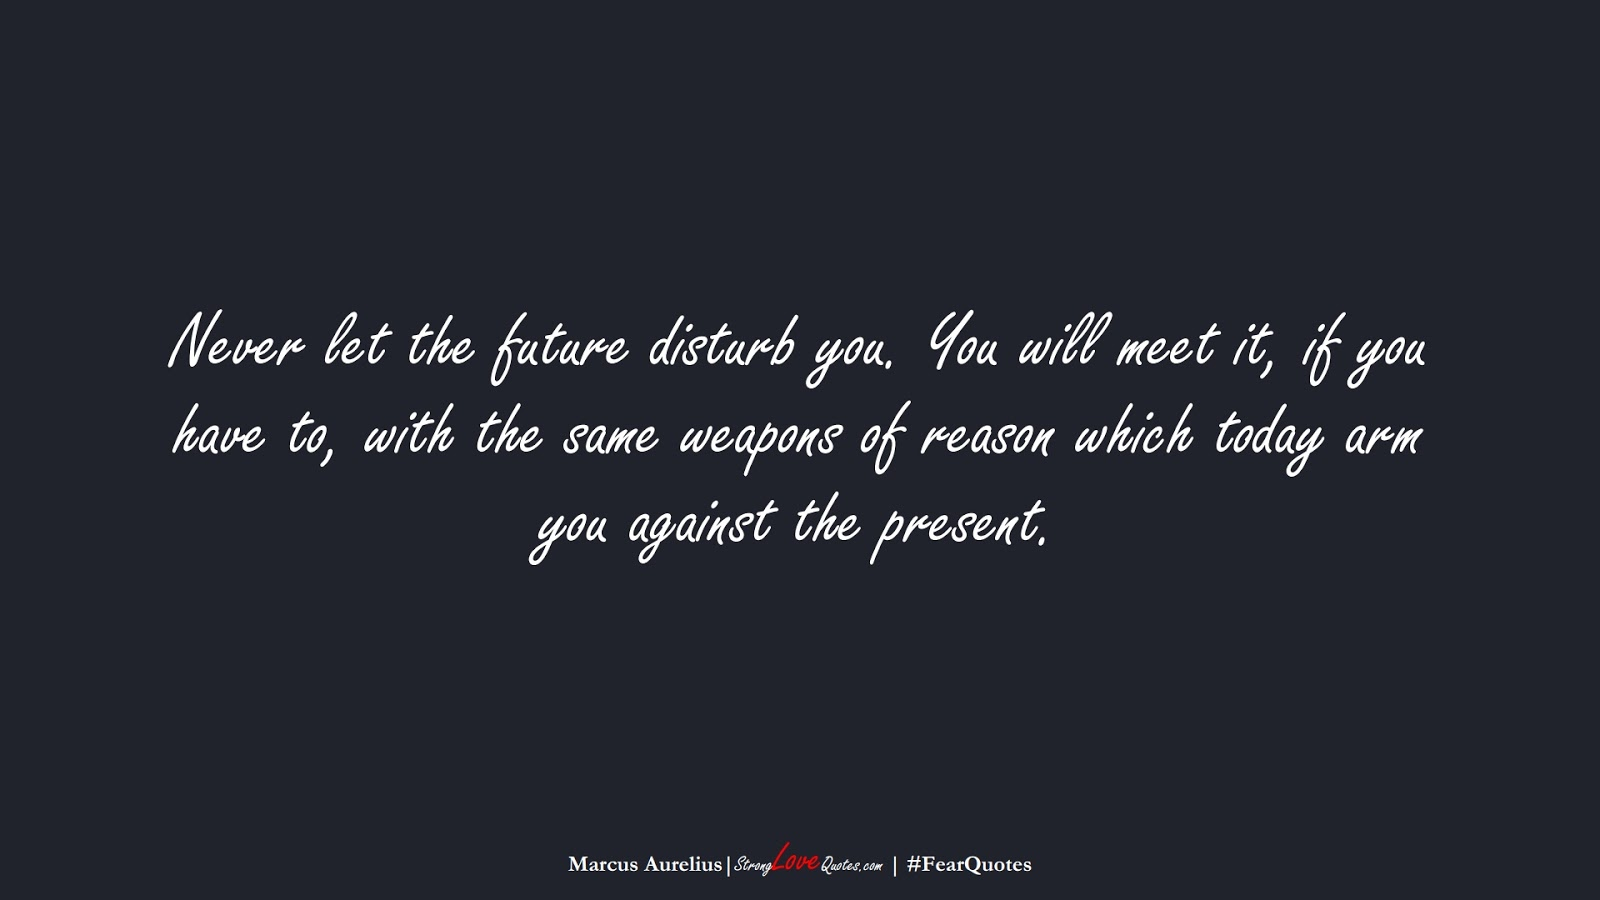 Never let the future disturb you. You will meet it, if you have to, with the same weapons of reason which today arm you against the present. (Marcus Aurelius);  #FearQuotes